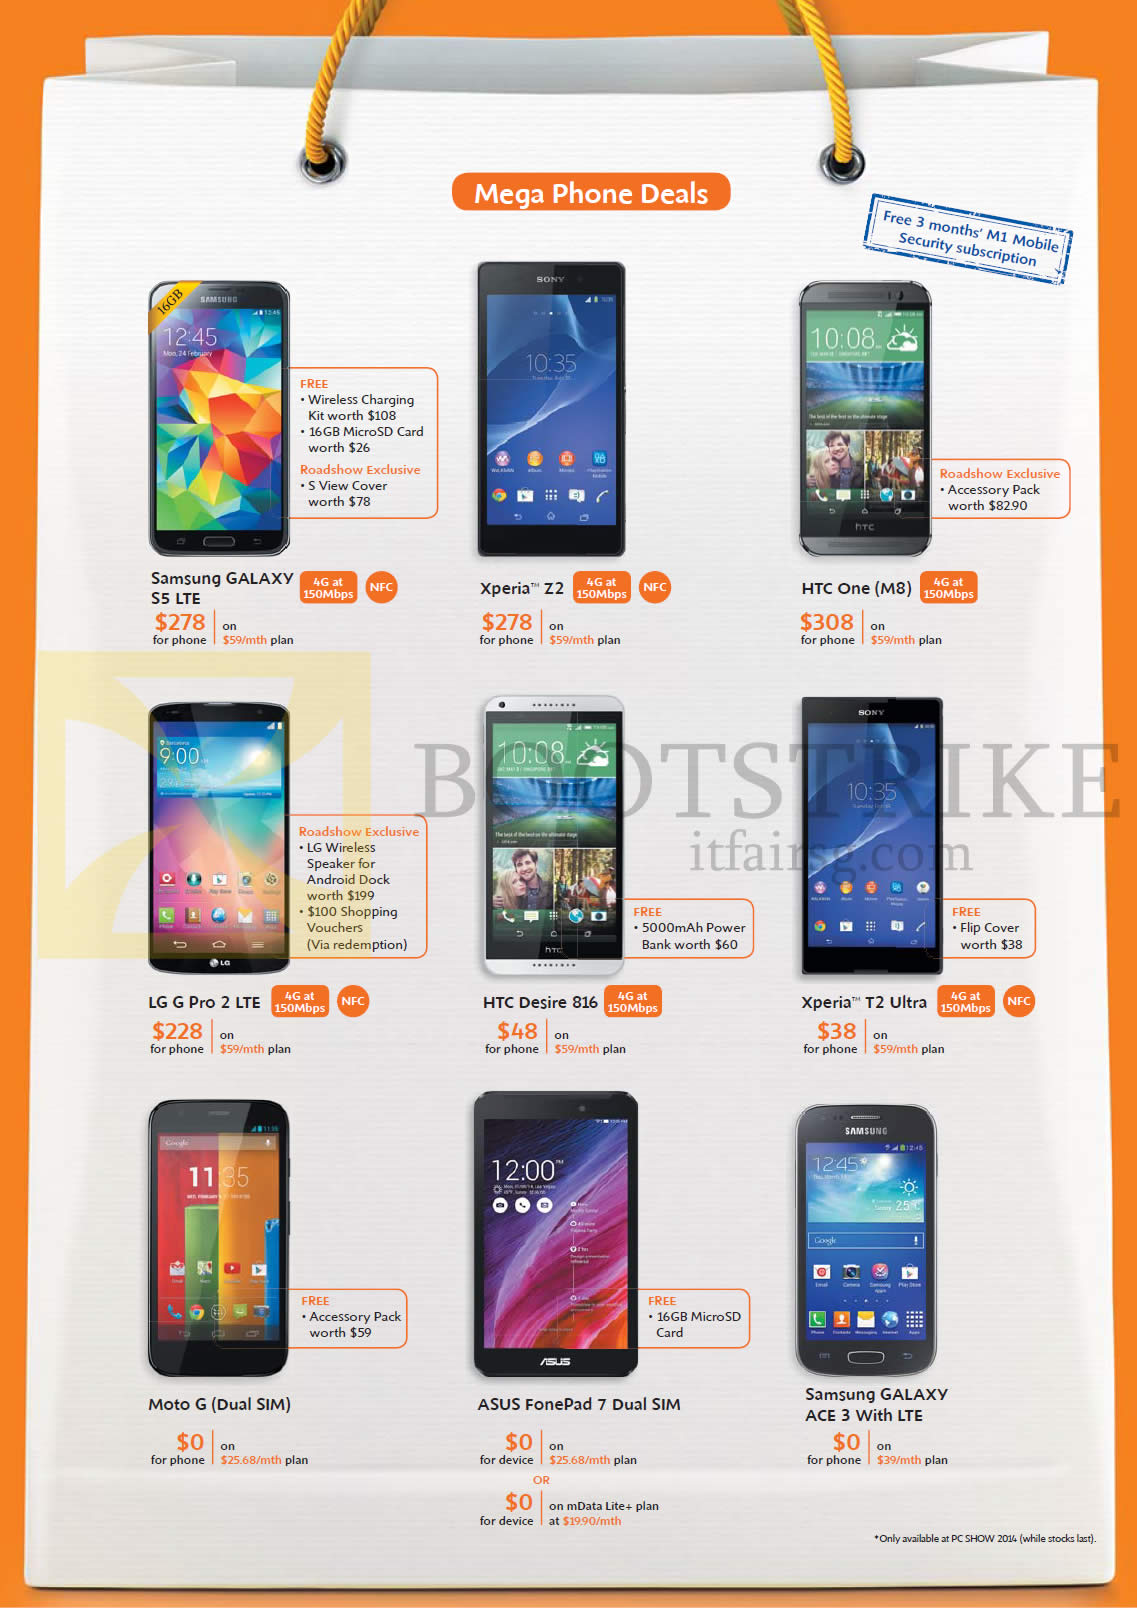 sony xperia price list. pc show 2014 price list image brochure of m1 samsung galaxy s5 ace 3, sony. « sony xperia